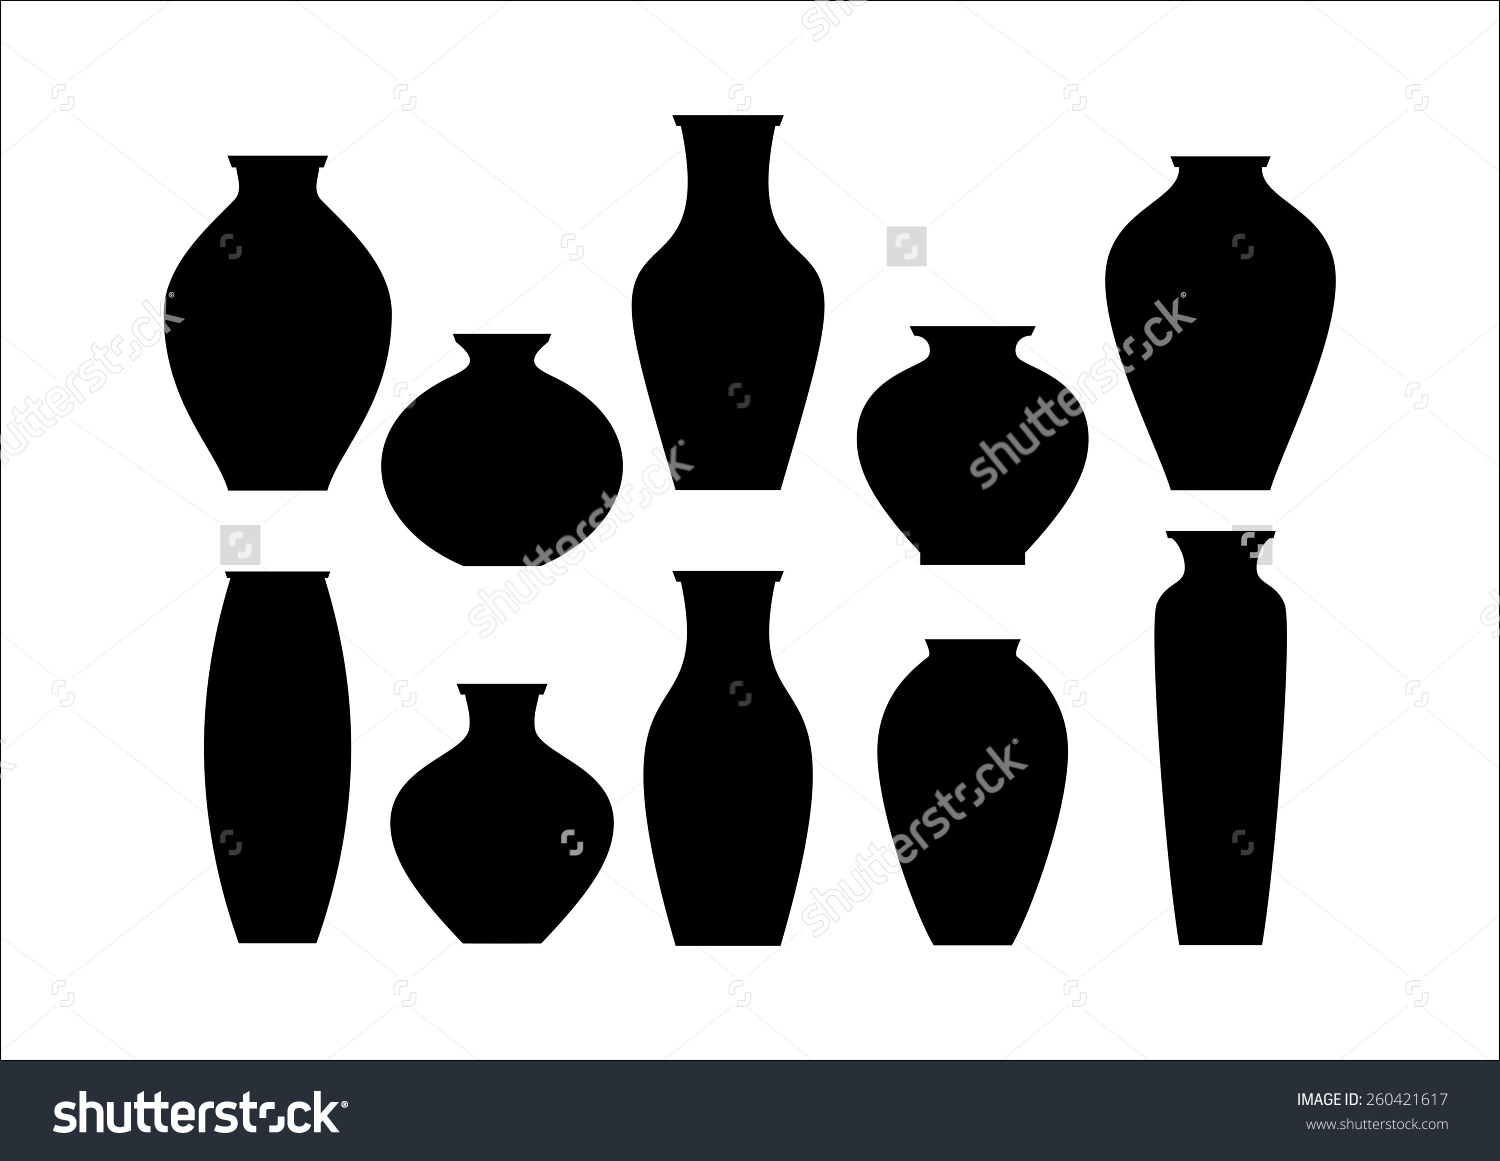 Ceramic decoration clipart #7